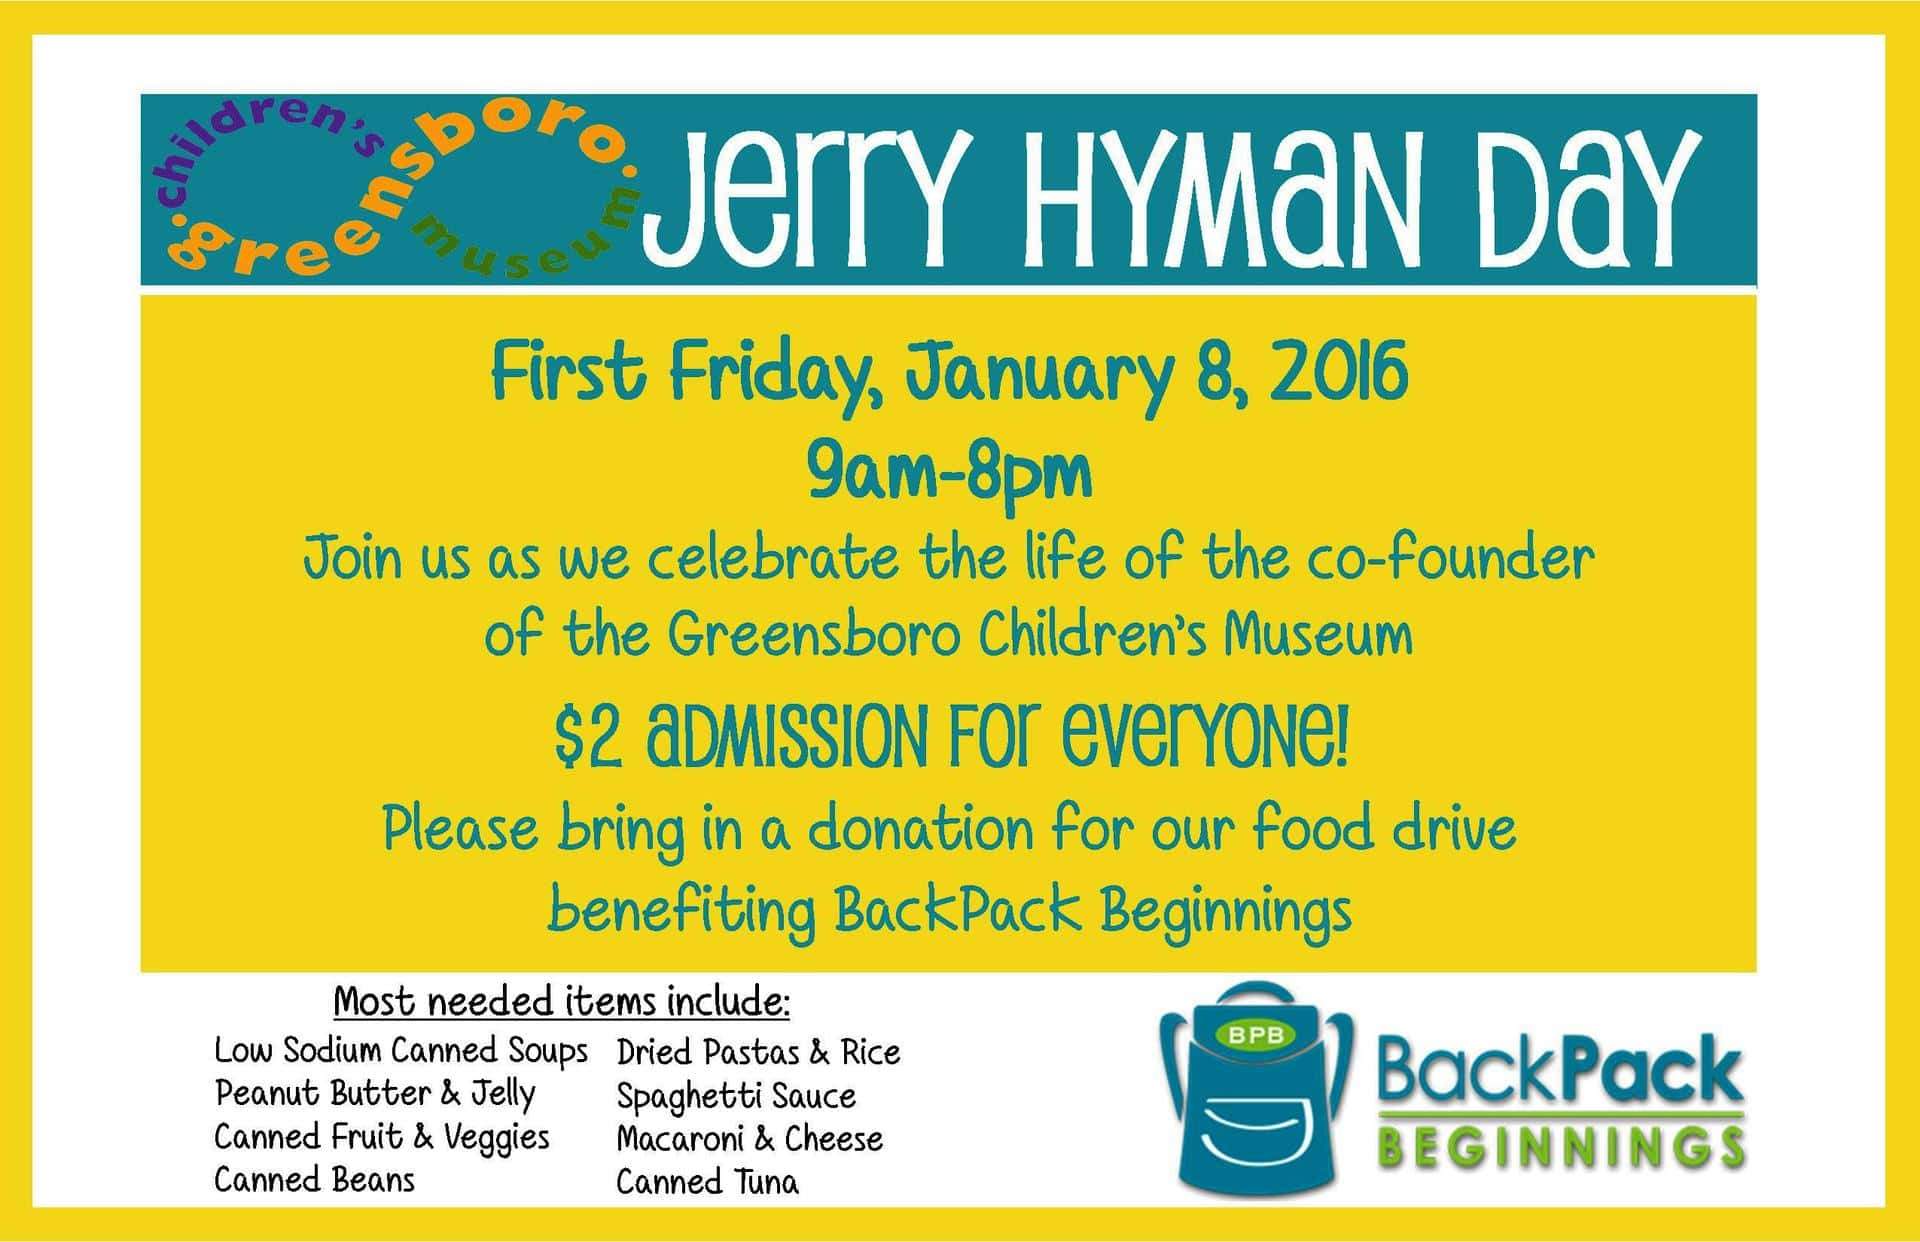 Jerry hyman day 2016 large